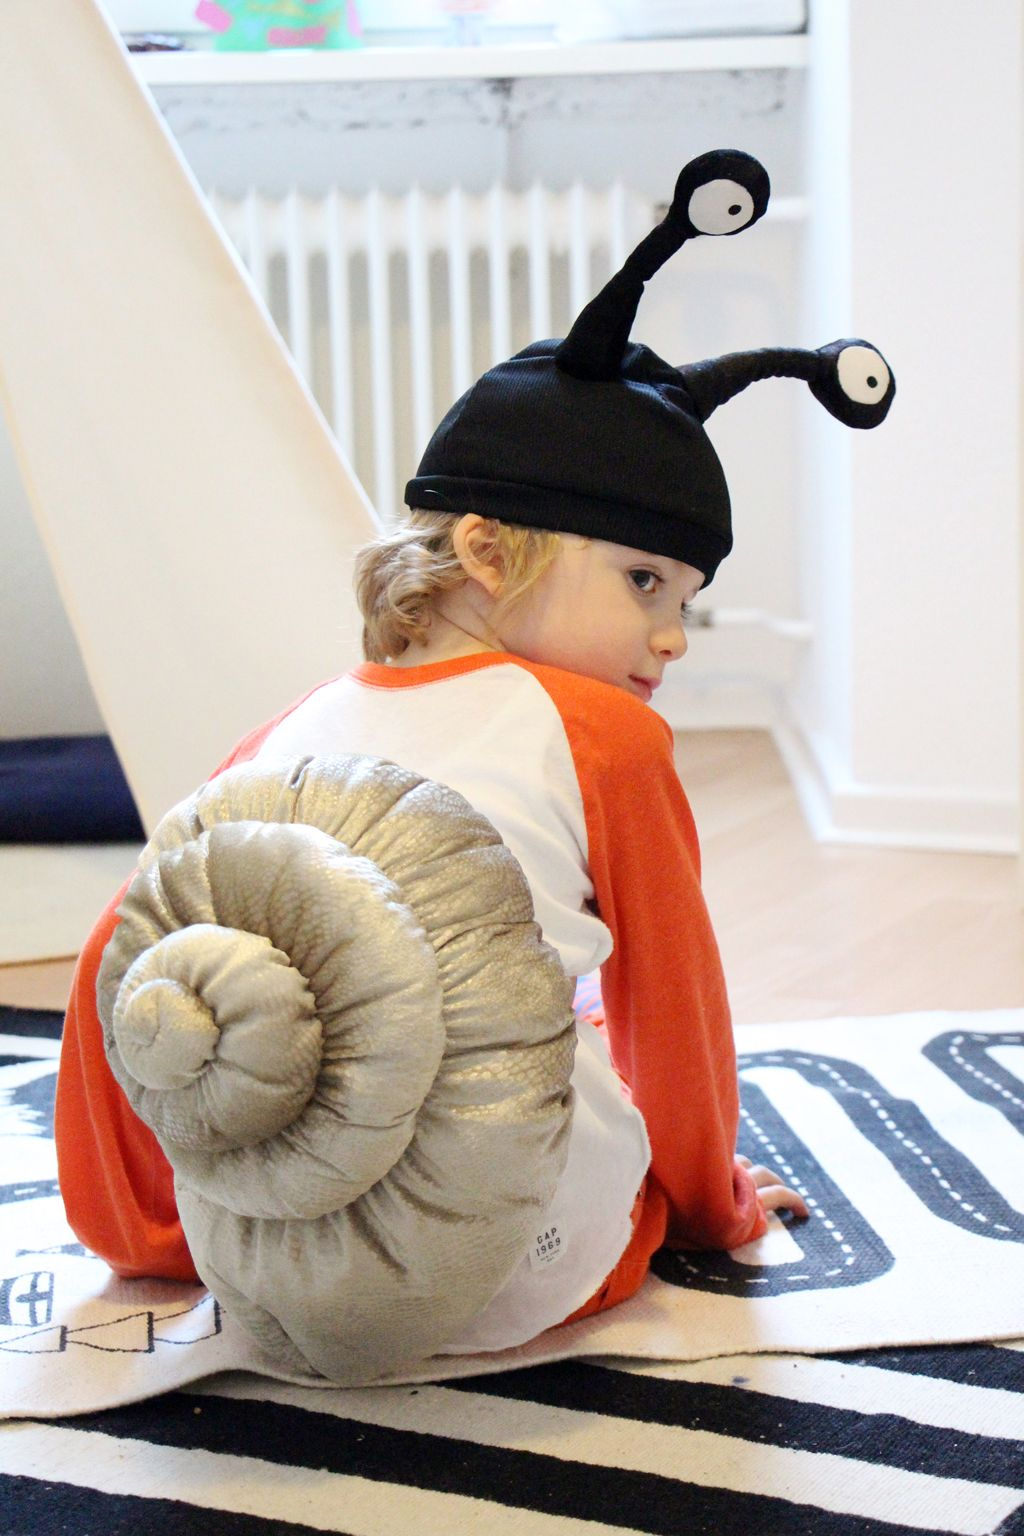 Baby Faschingskostüm Selber Machen Ikea Hack Diy Snail Costume Costumes And More Pinterest